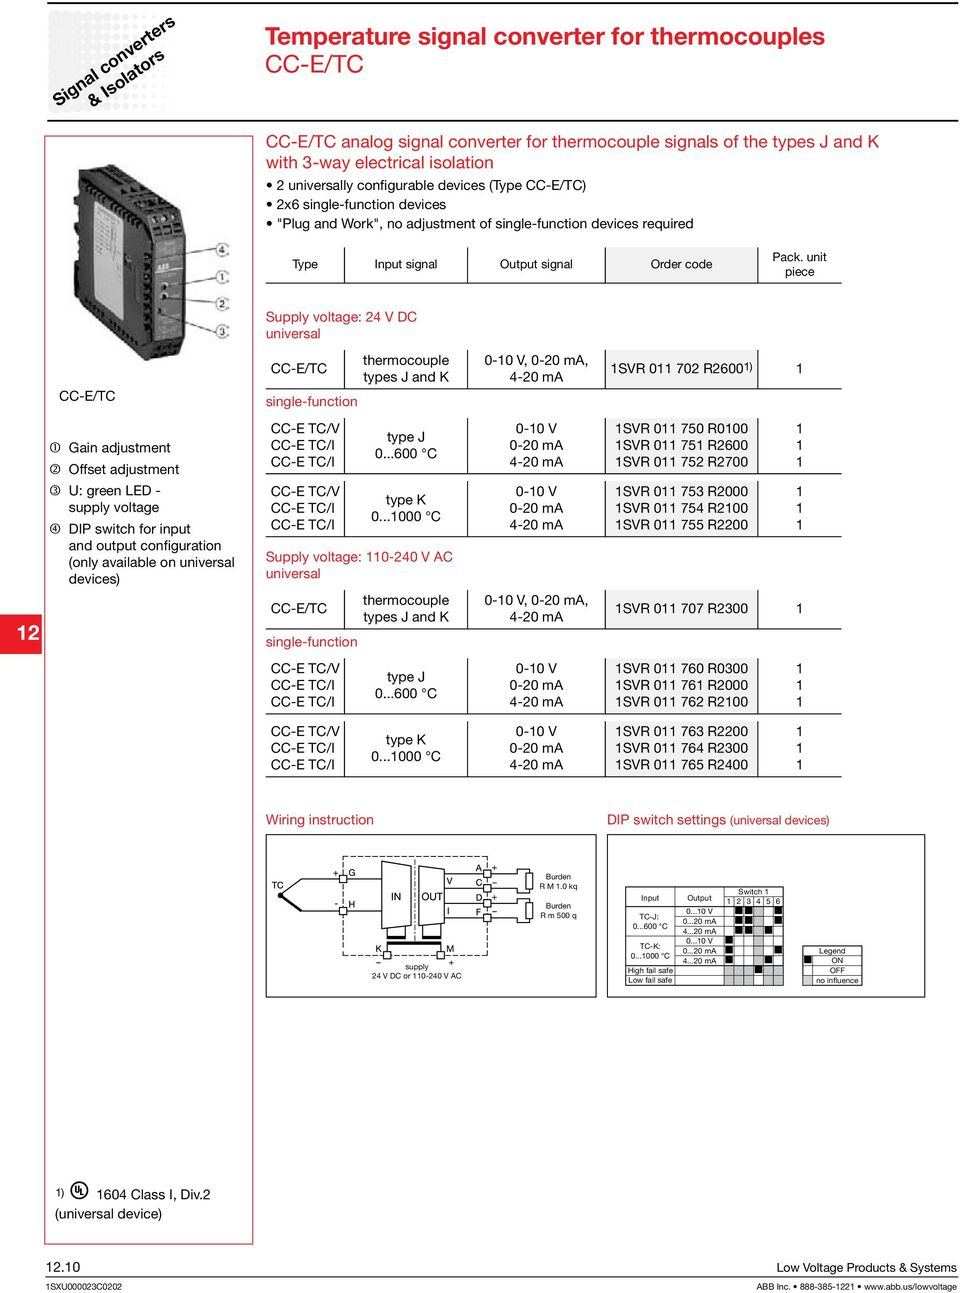 V DC universal CC-E/TC CC-E/TC single-function thermocouple types J and K - V,, SVR 72 R26 ) 2 Gain adjustment Offset adjustment U: green LED - supply voltage DIP switch for input and output